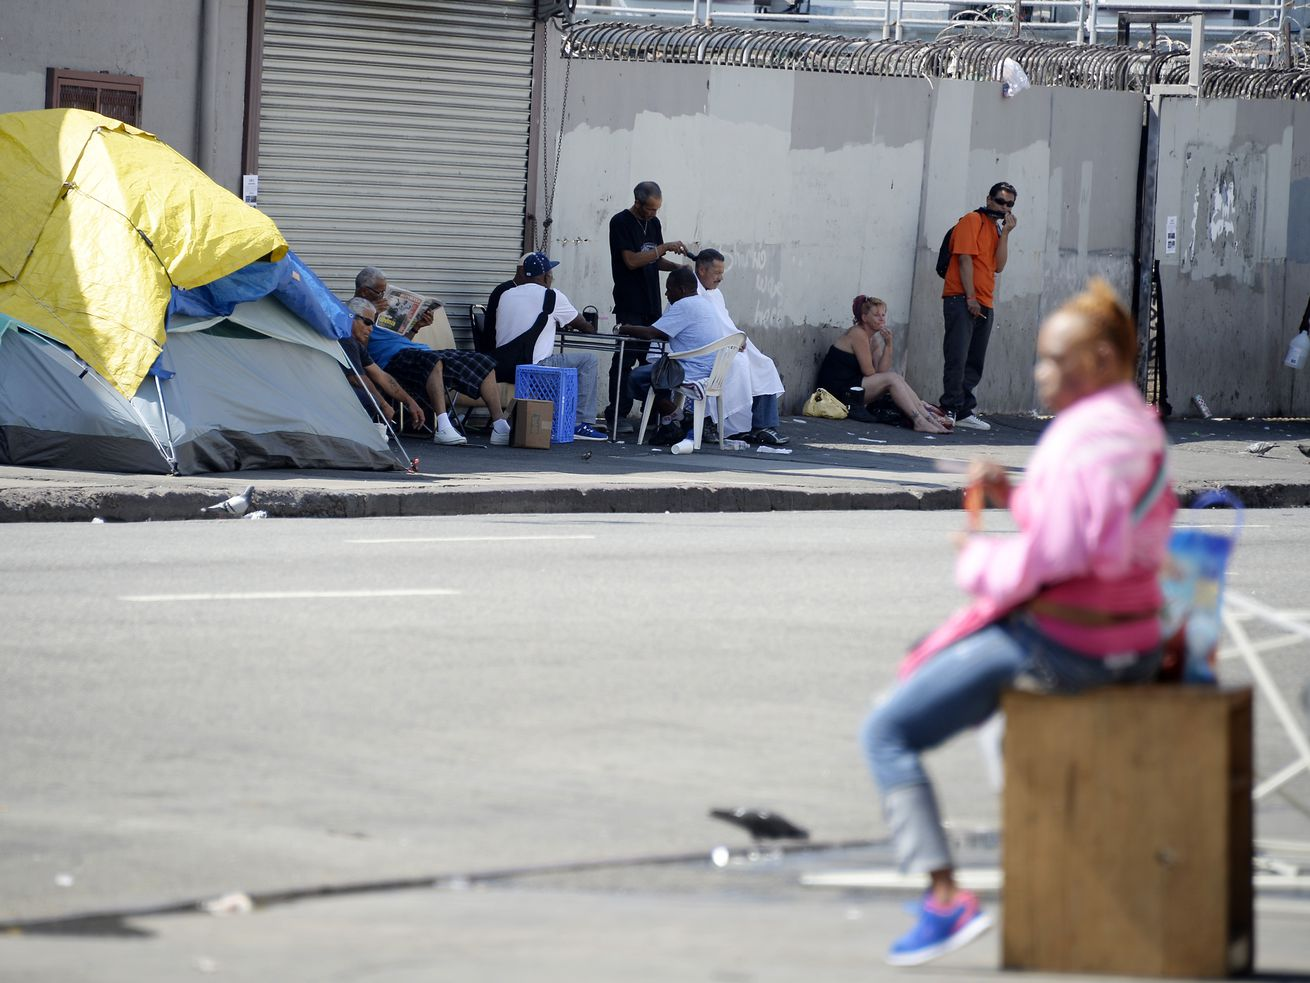 Skid Row, home to about 2,000 homeless residents.